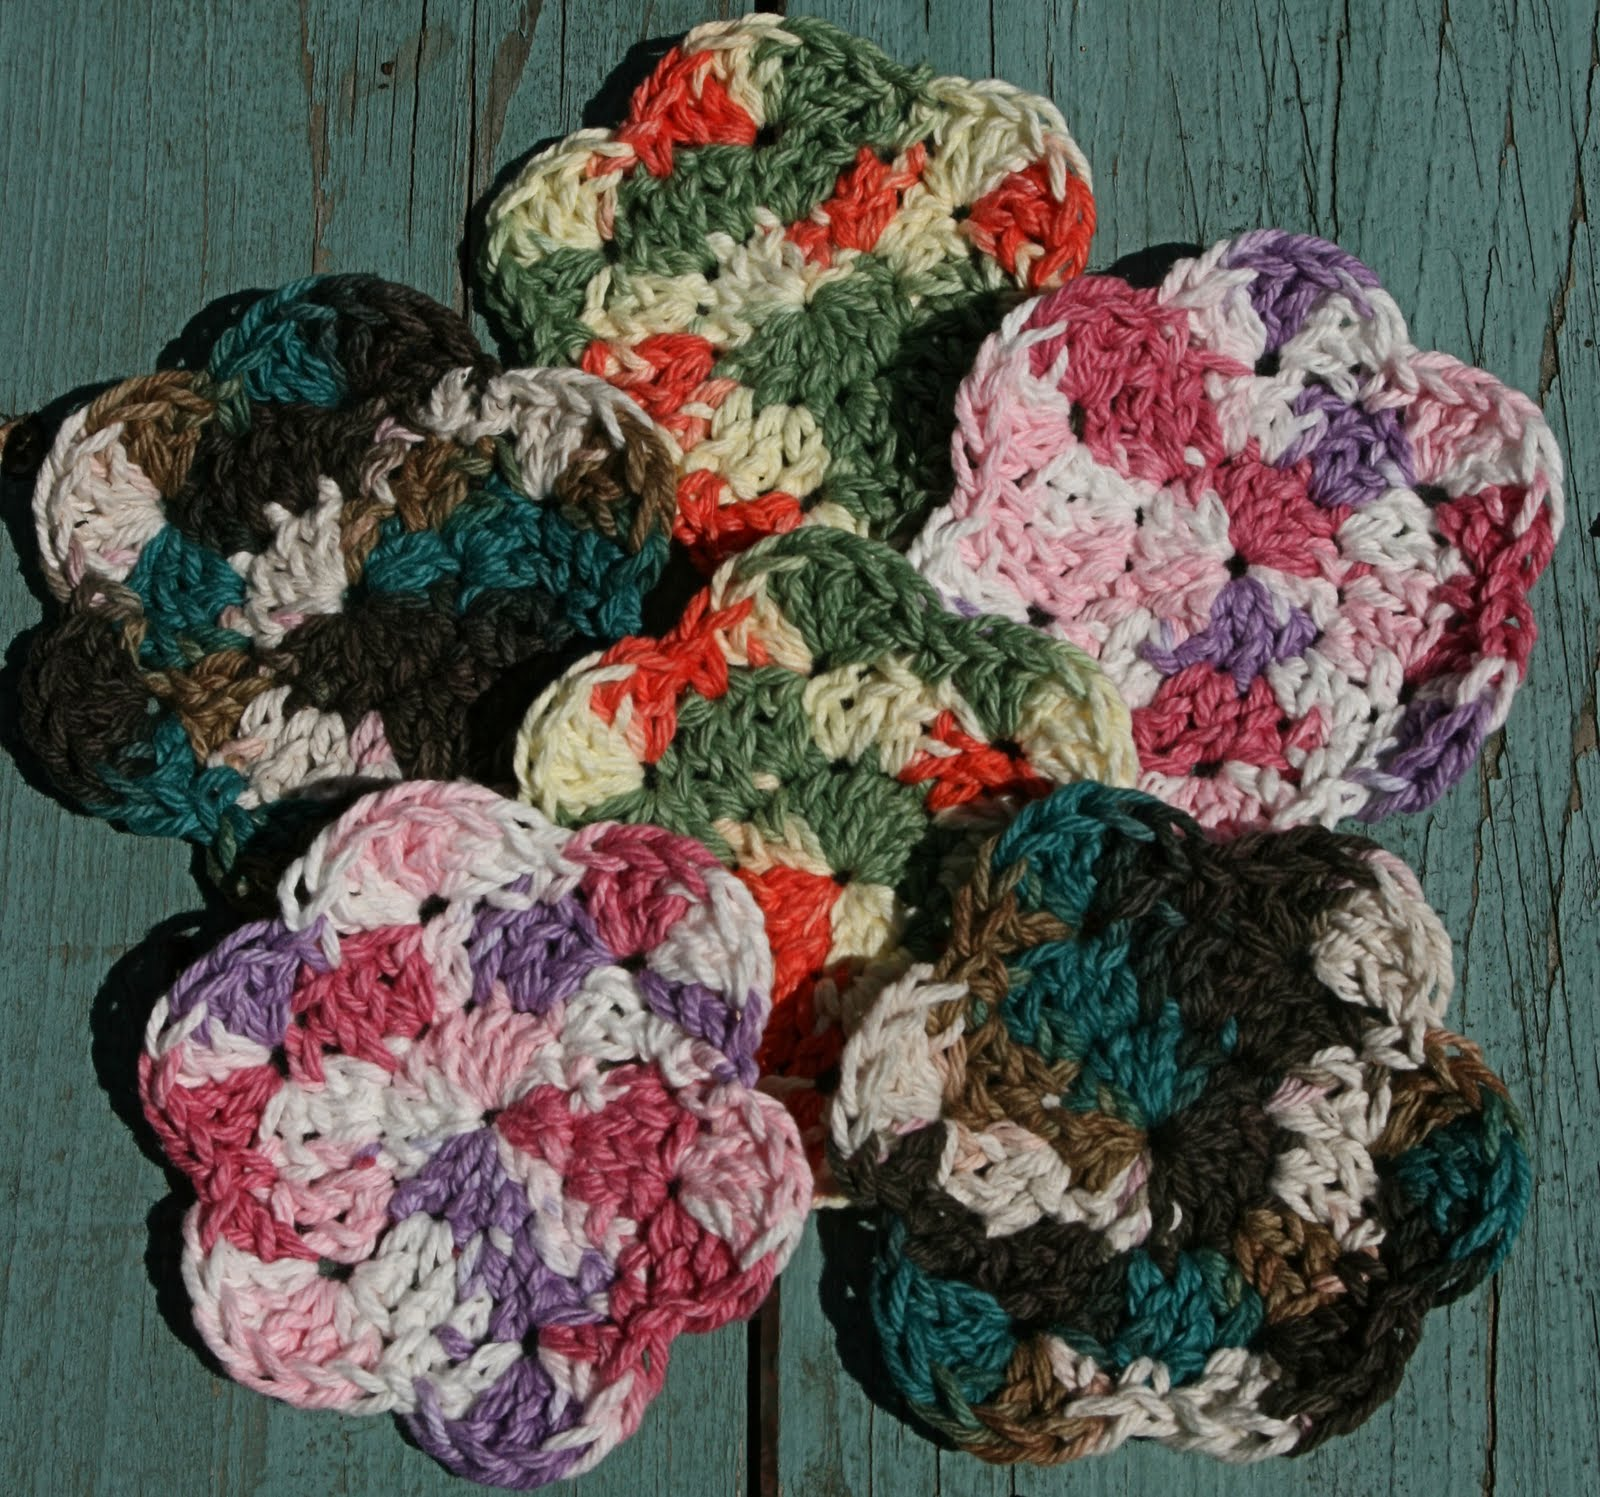 Crochet Patterns Scrubbies : Scrubbies pattern /crinoline scrubbies pattern/